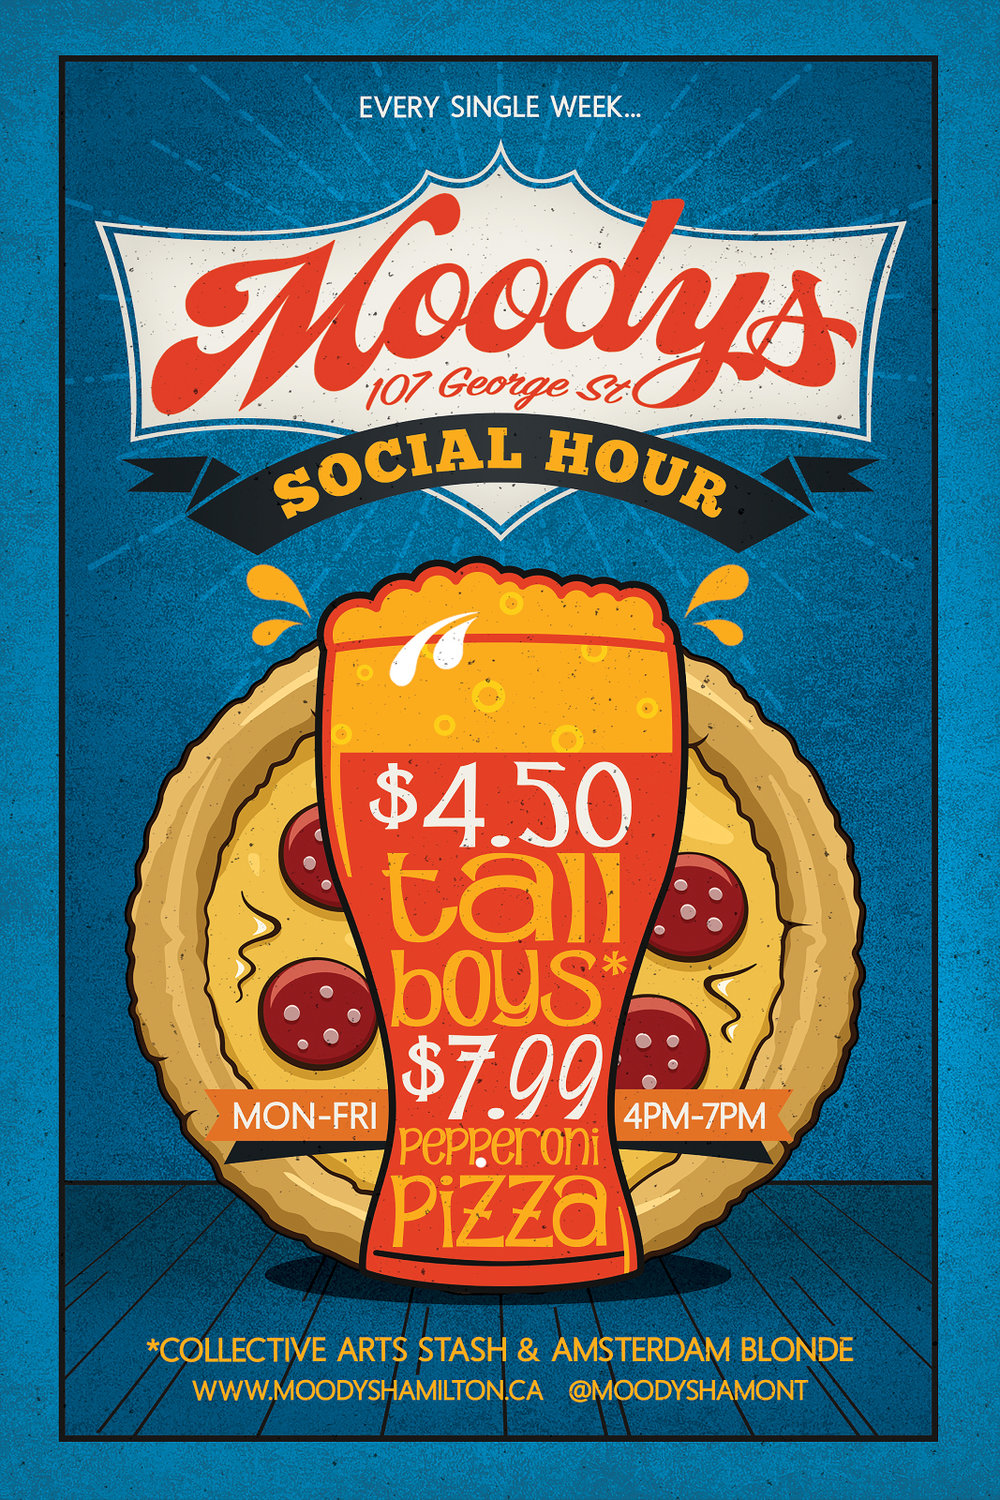 $4.50 tall cans of Stash & Amsterdam Blonde along side $7.99 pepperoni pizzas every weekday 4pm-7pm